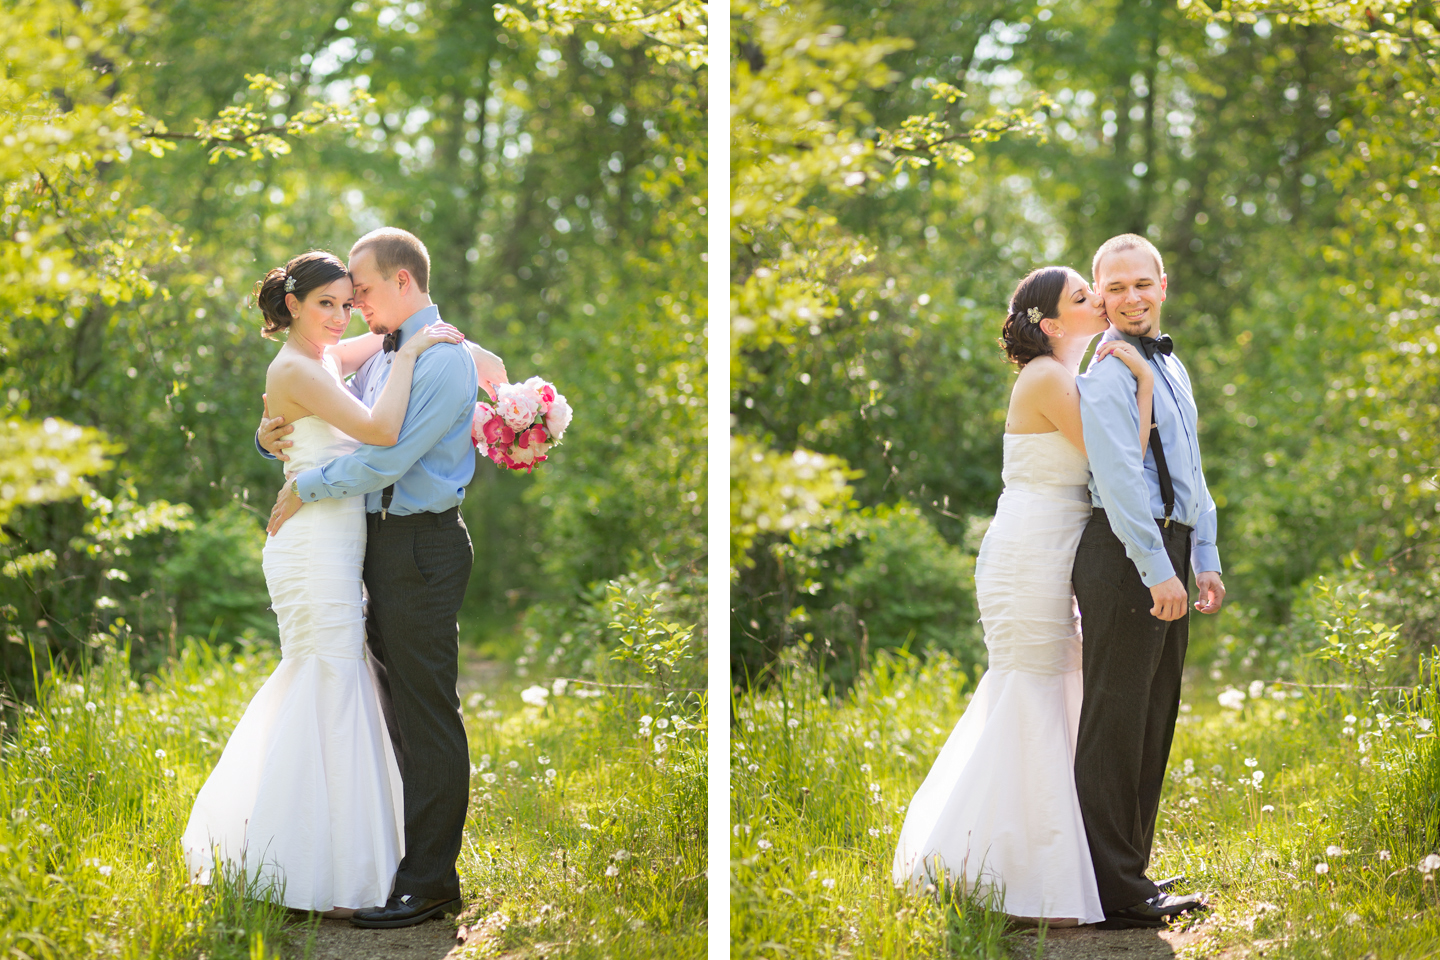 wedding photography in ann arbor park in the spring